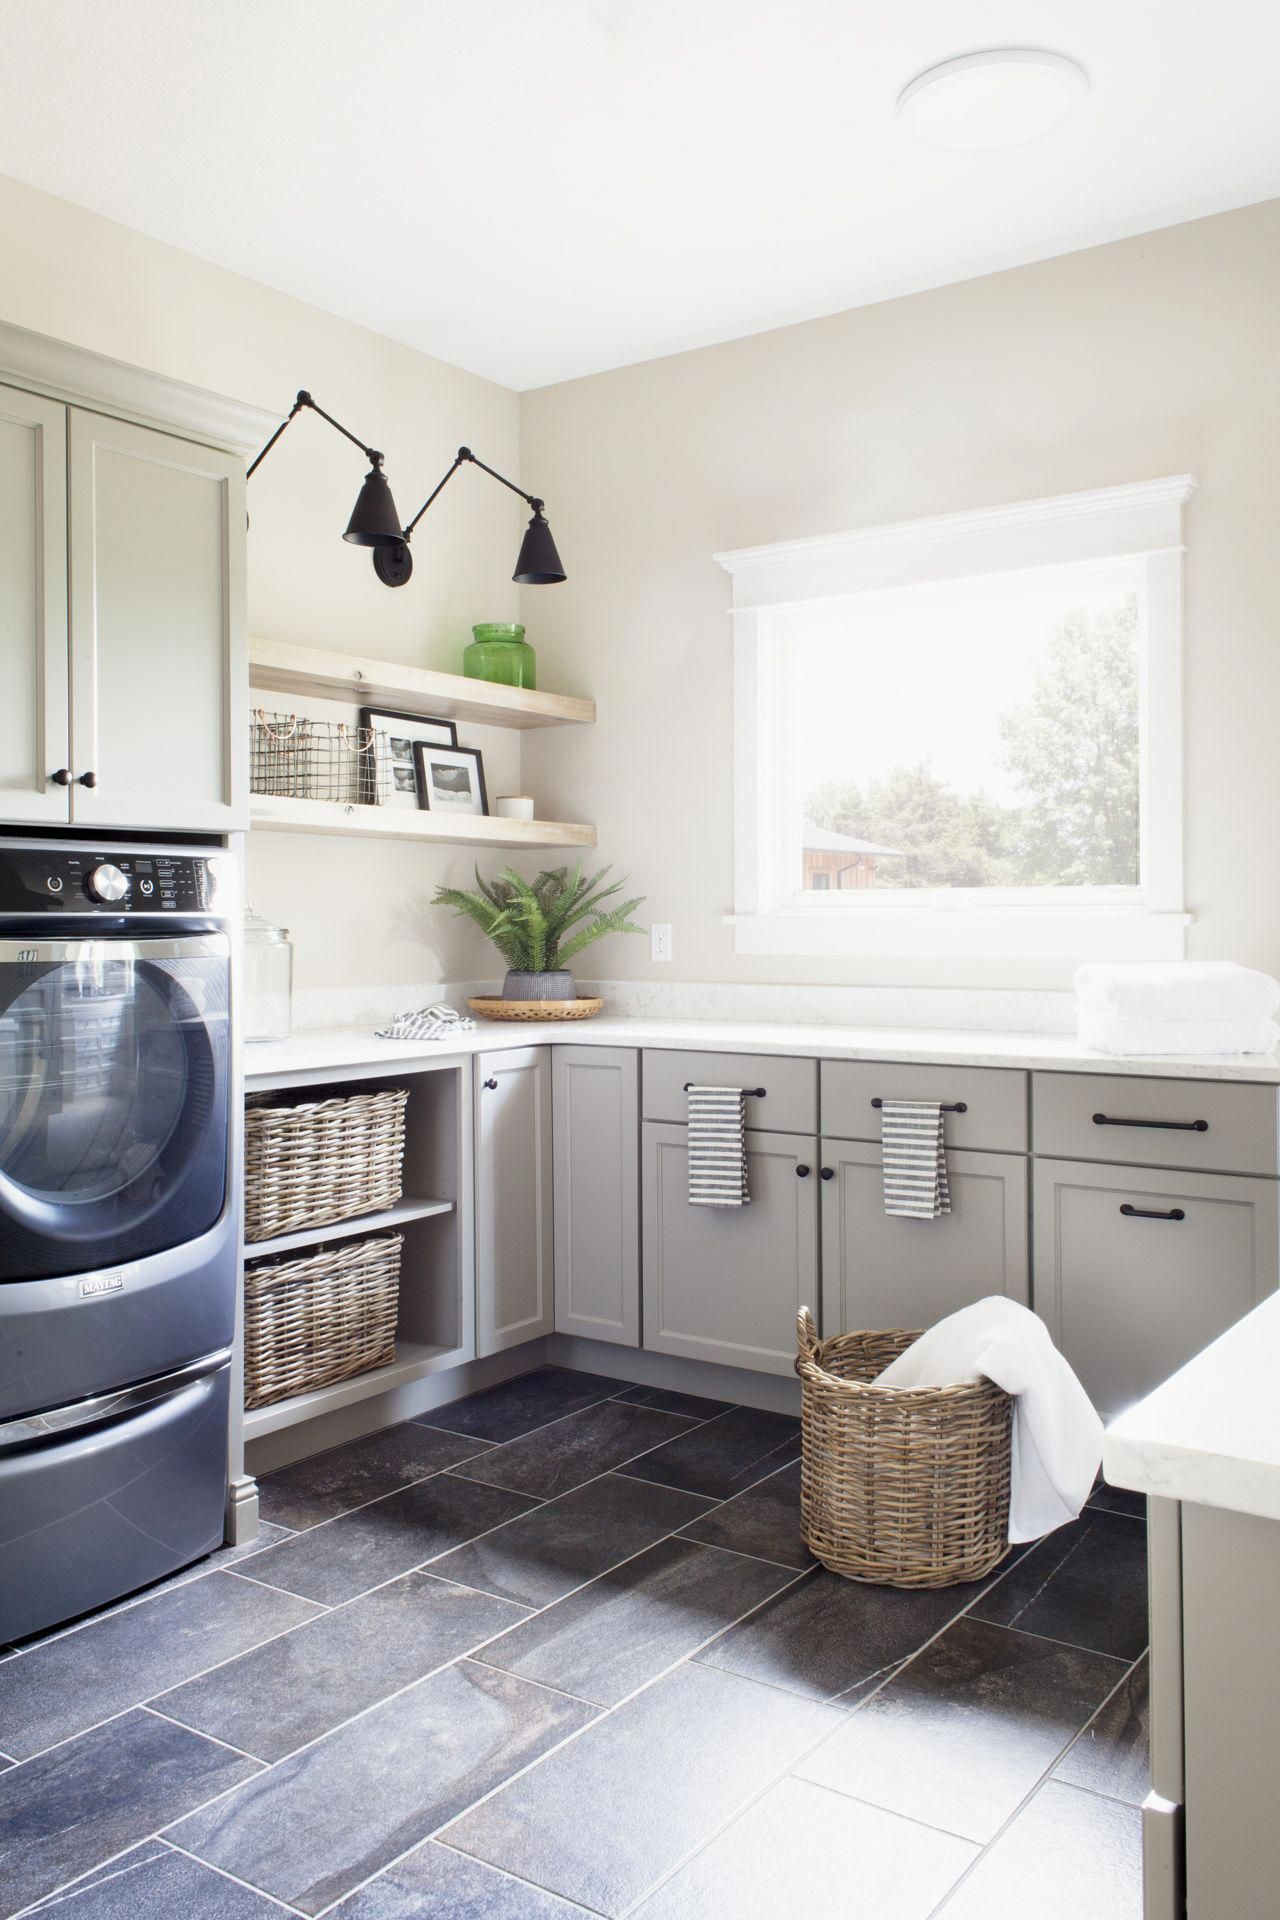 Lakeview Home Laundry Room Reveal Chelsea Gray Cabinets By Benjamin Moore Black Wall Sc Laundry Room Design Laundry Room Decor Diy Laundry Room Inspiration